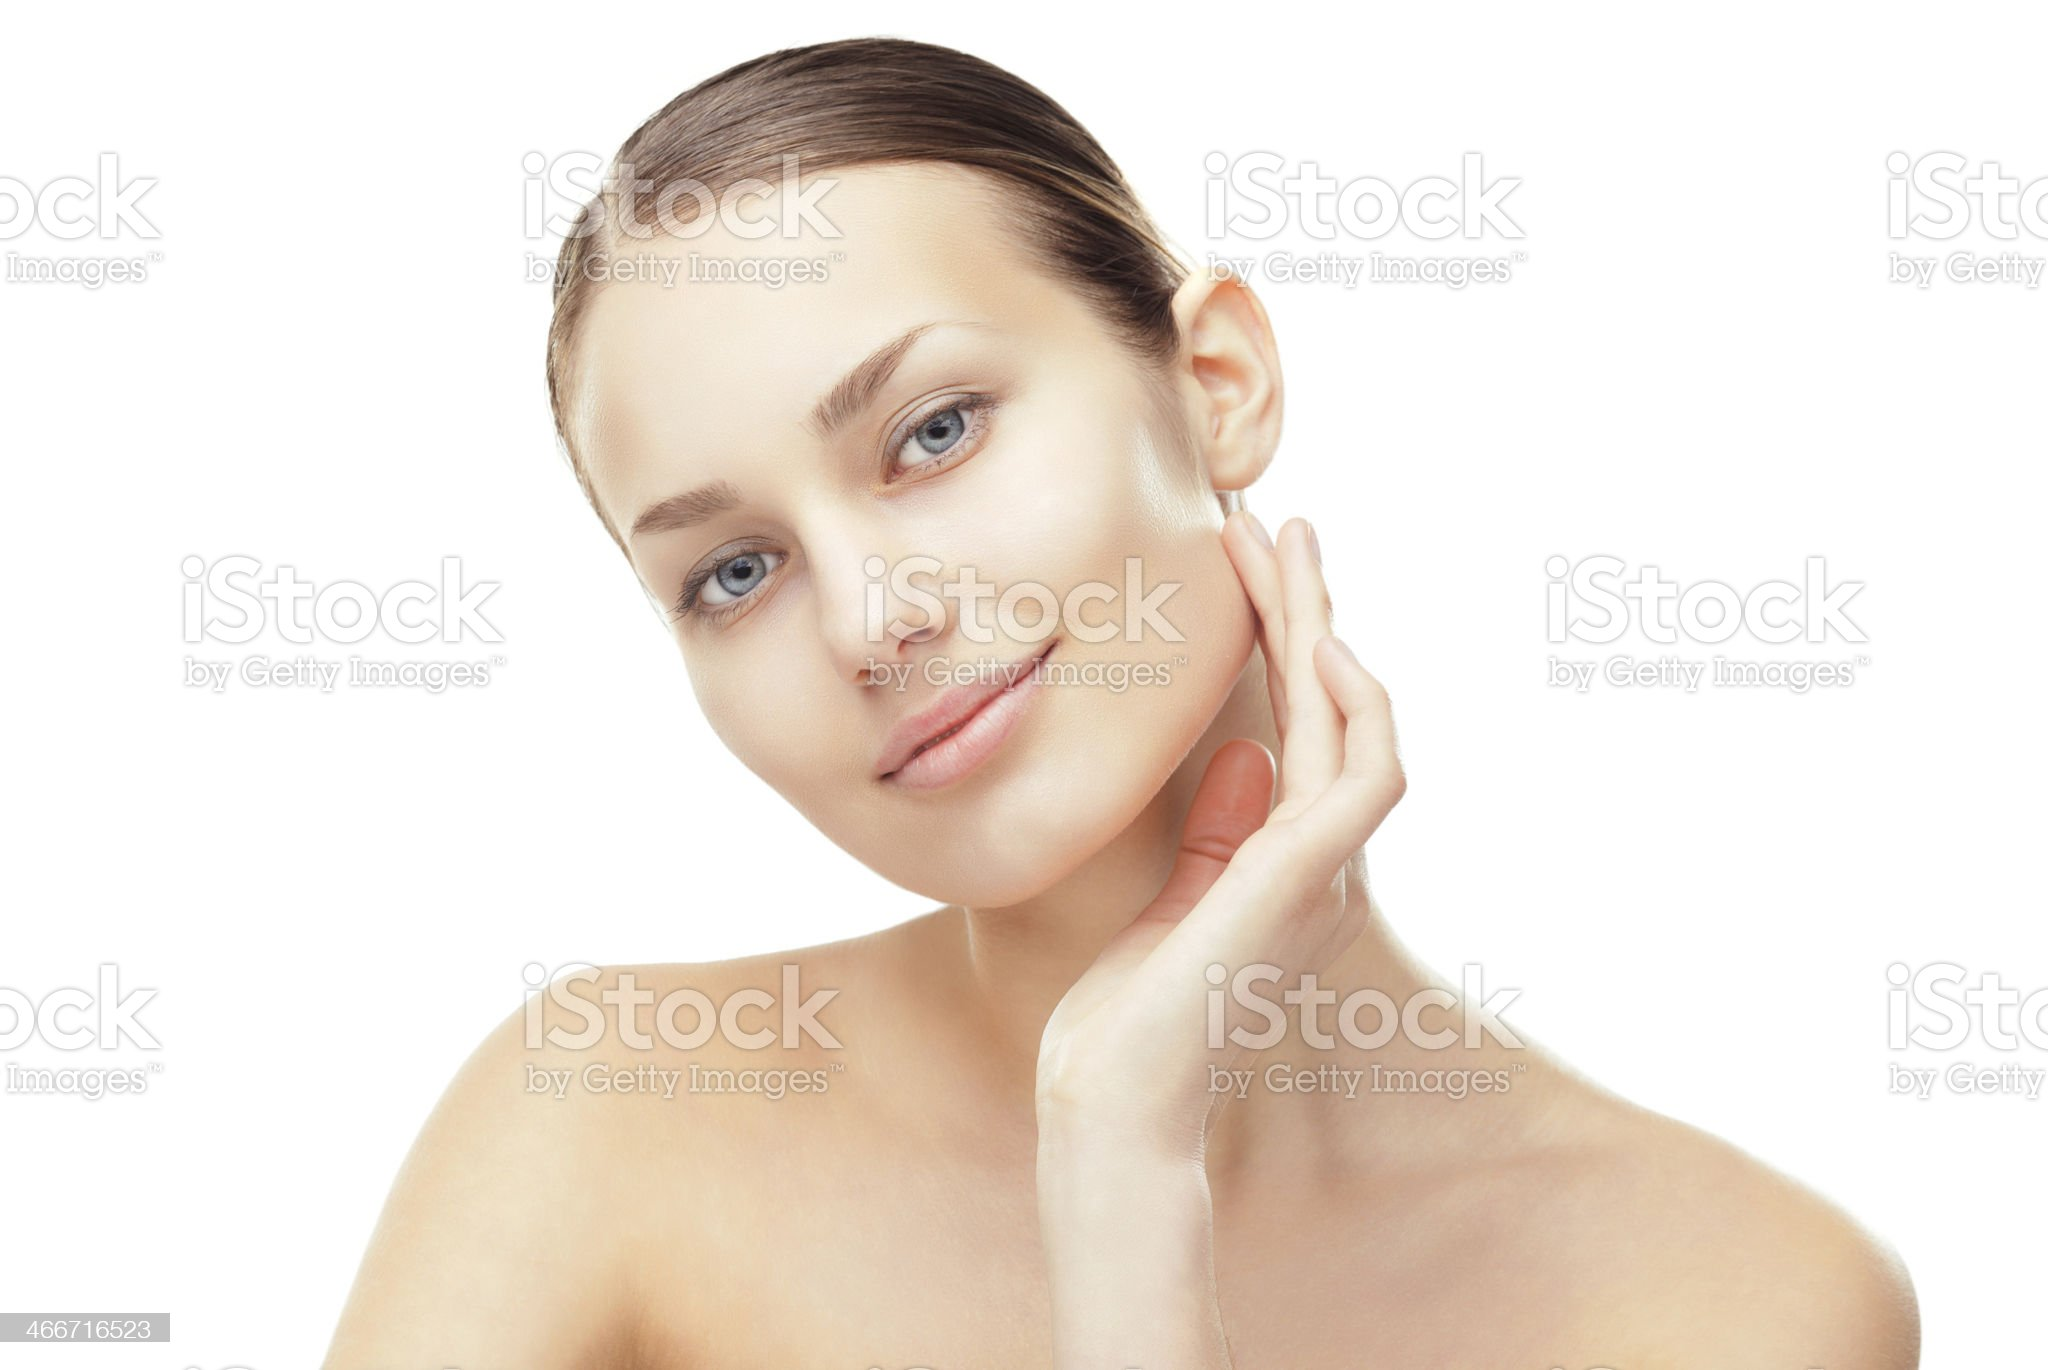 Beautiful young woman with healthy clean skin royalty-free stock photo